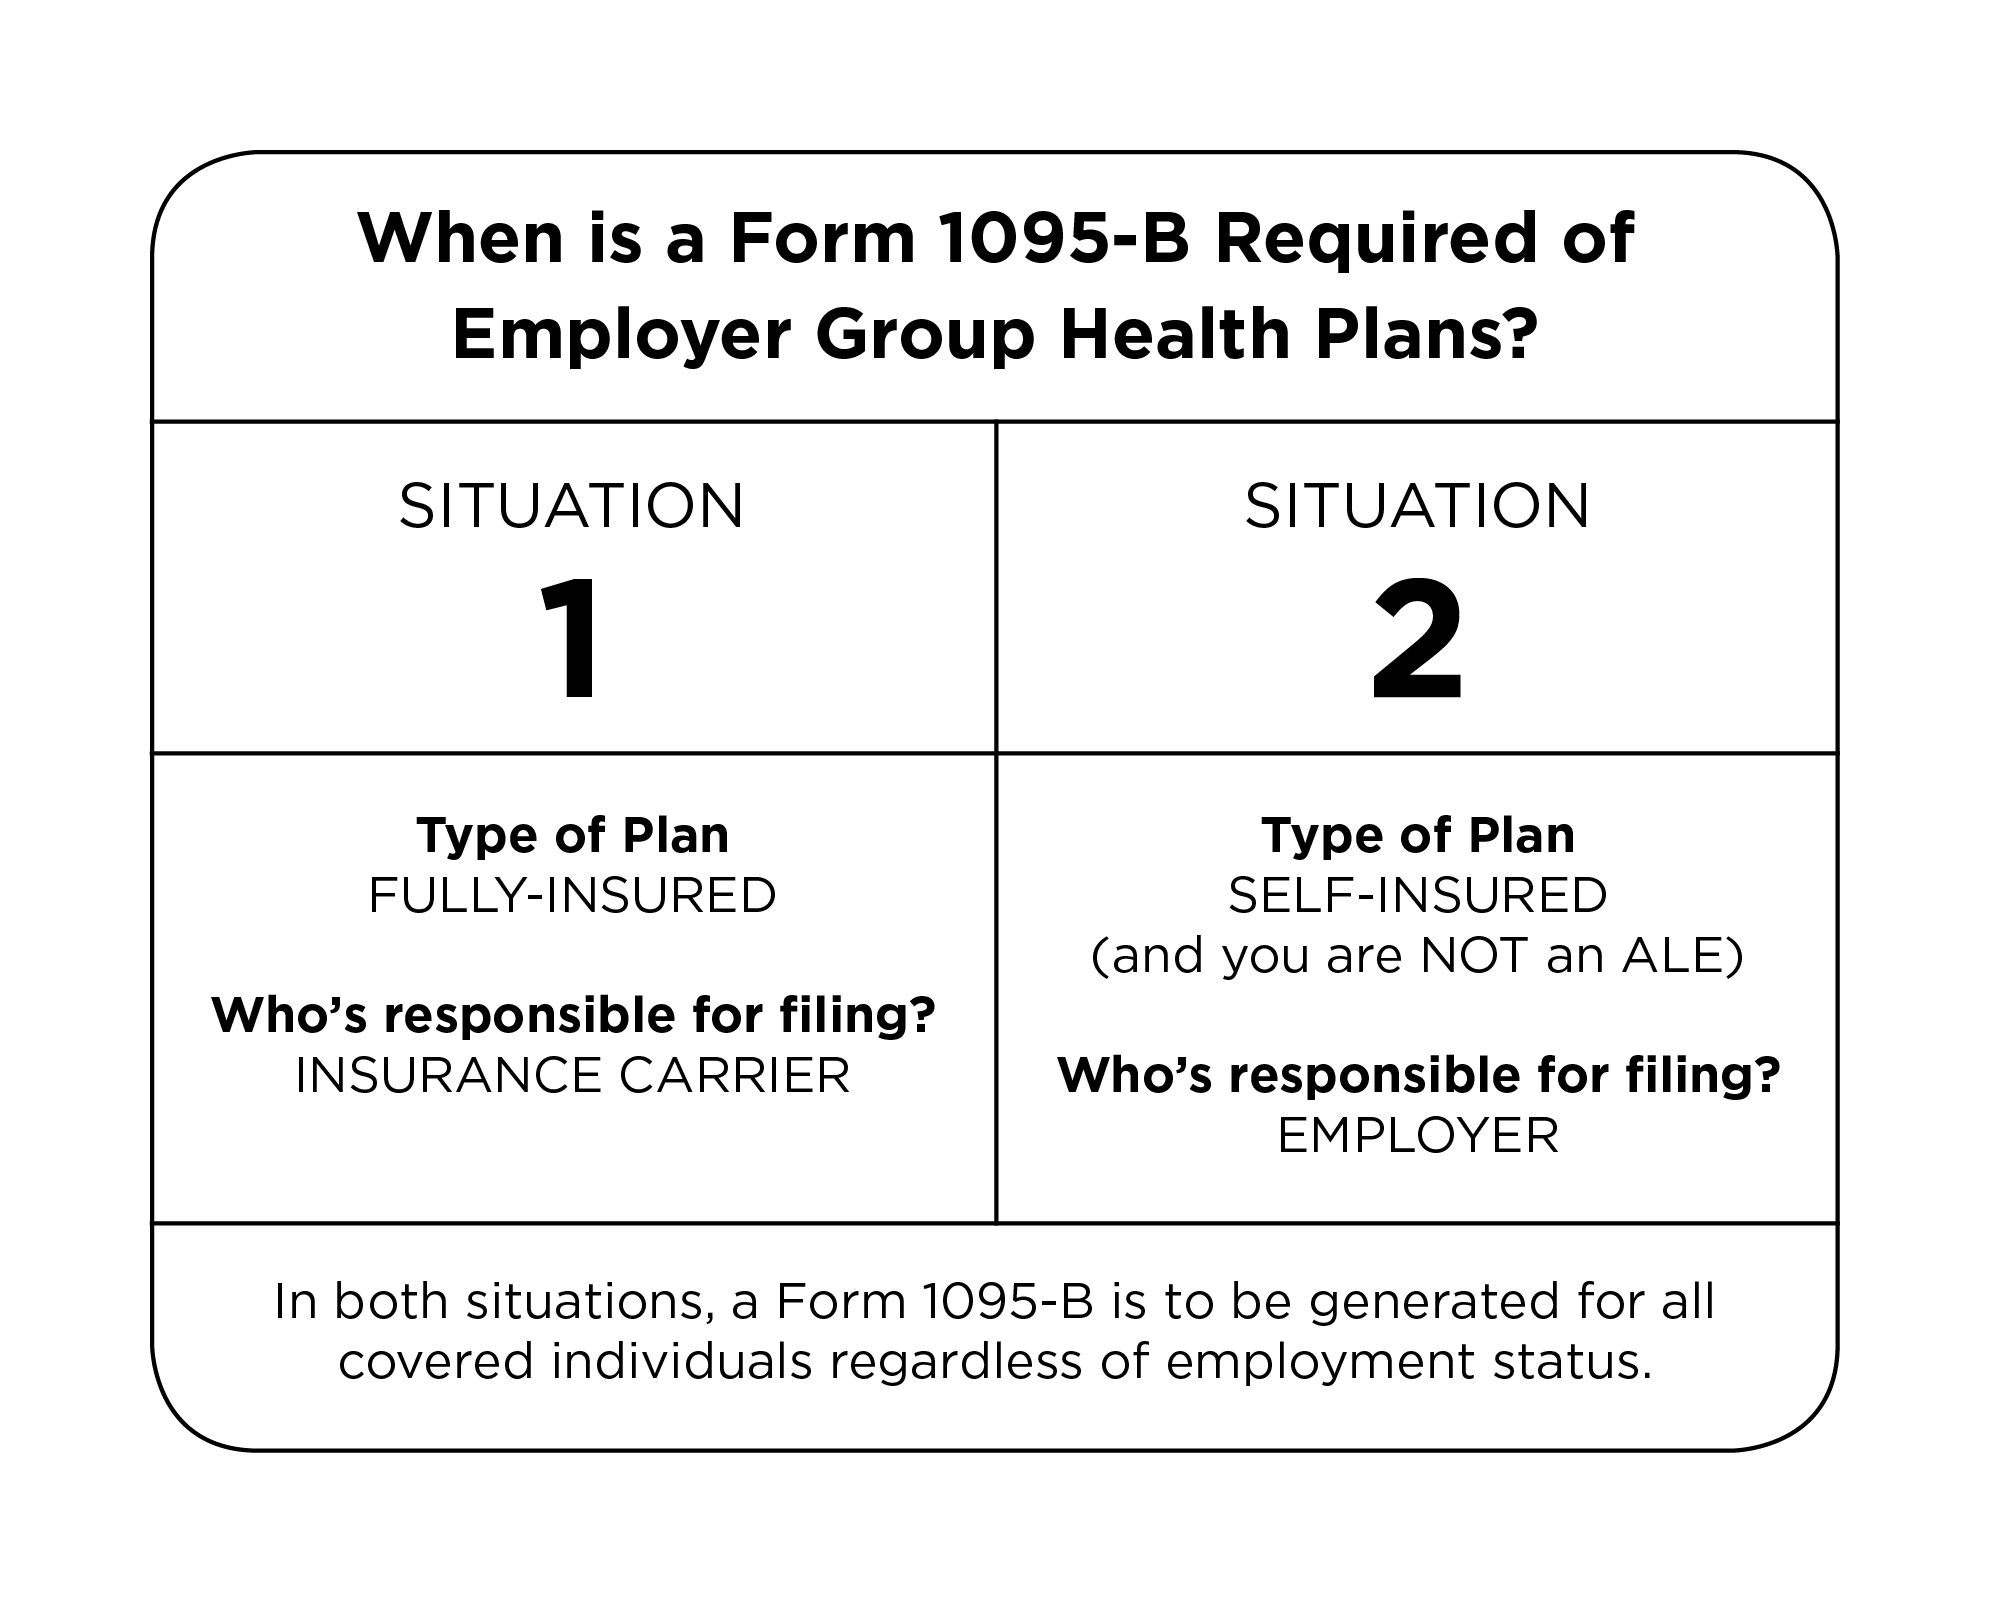 When is a Form 1095-B required